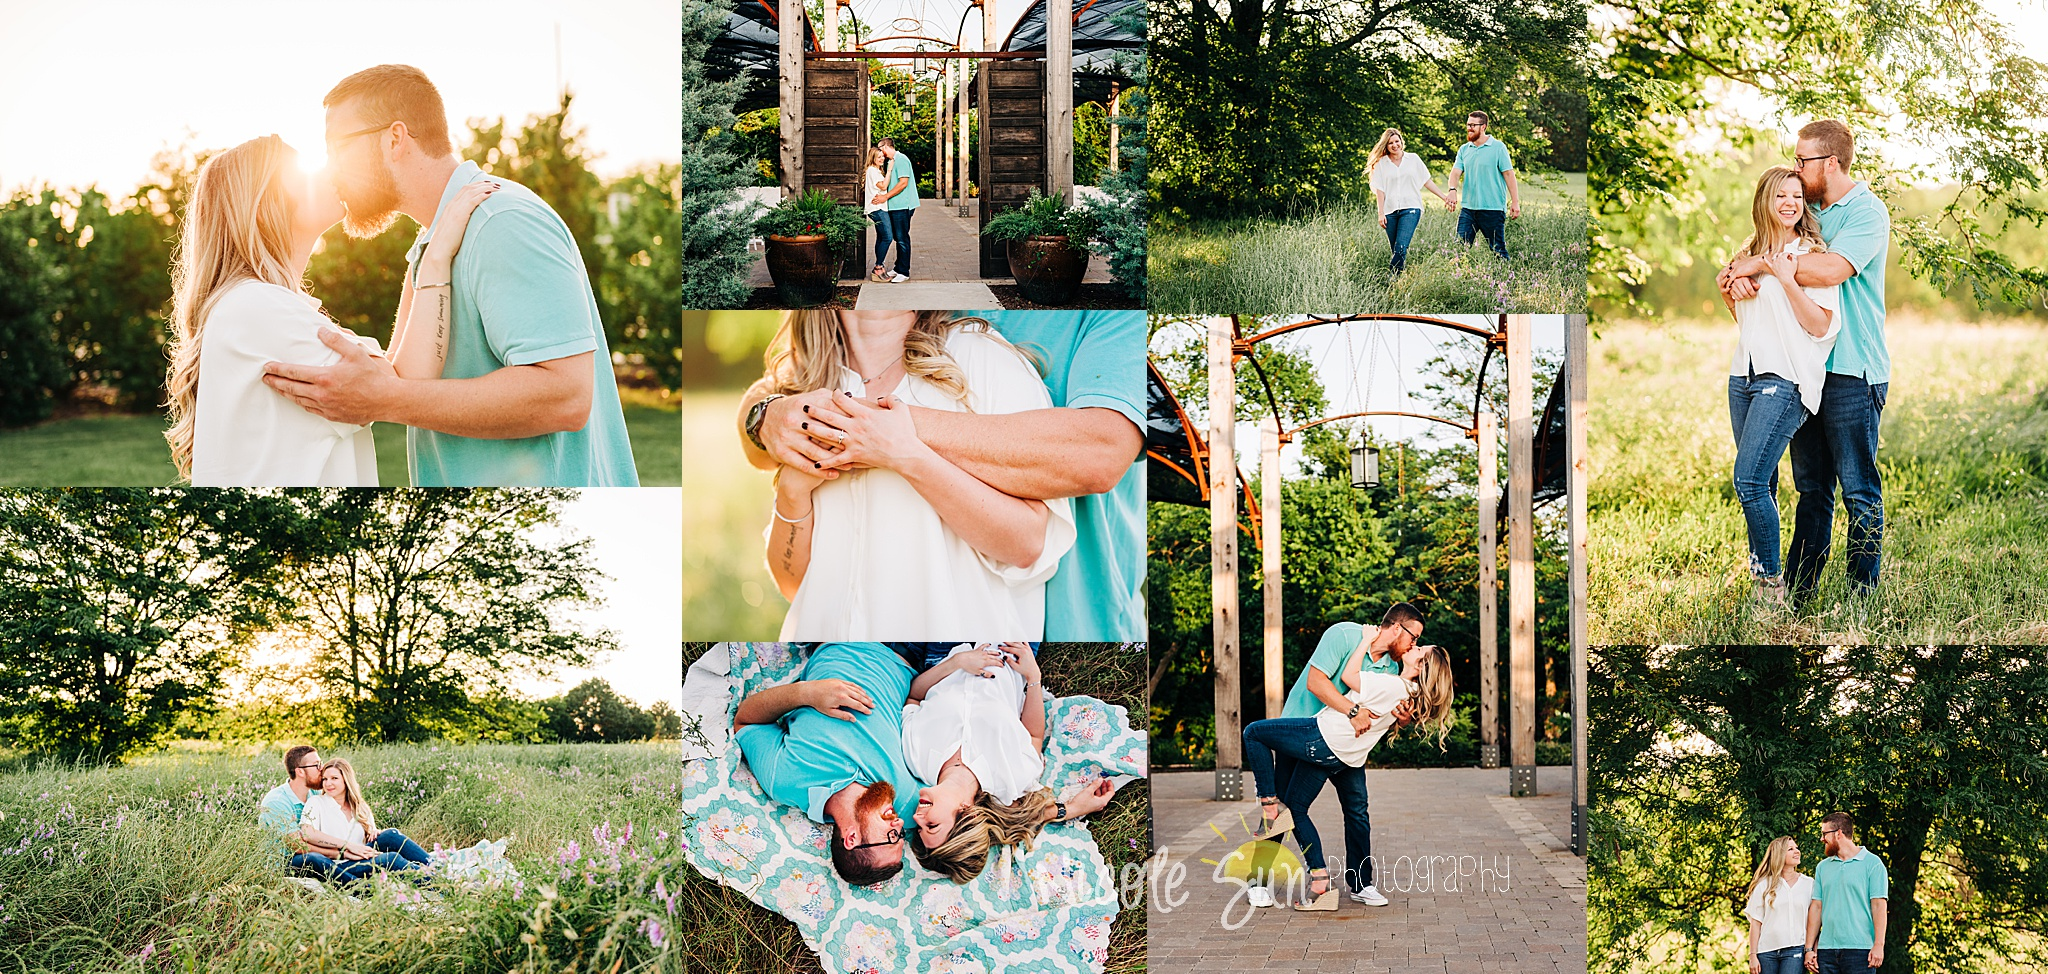 Engagement Session - Chandler's Gardens